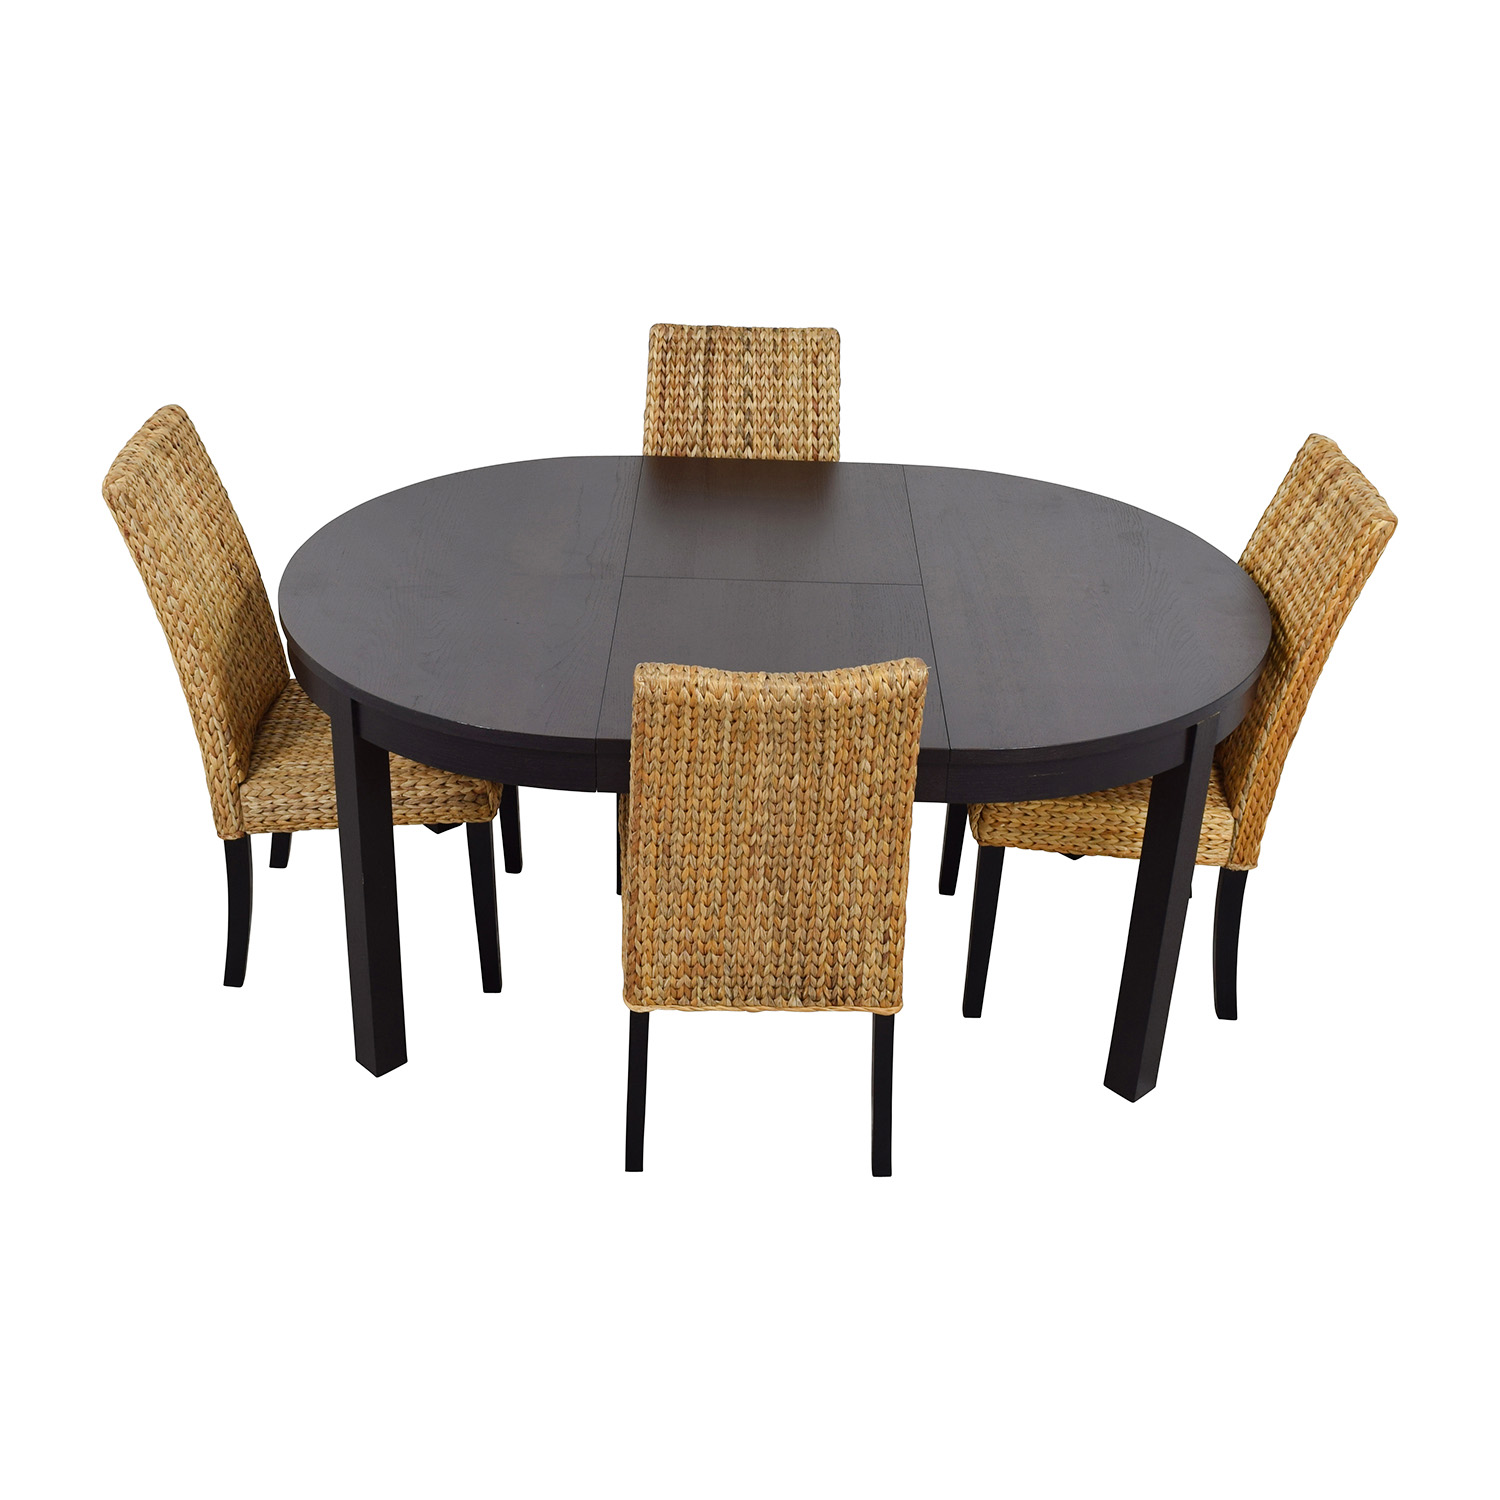 Macys & IKEA Round Black Dining Table Set with Four Chairs Dining Sets